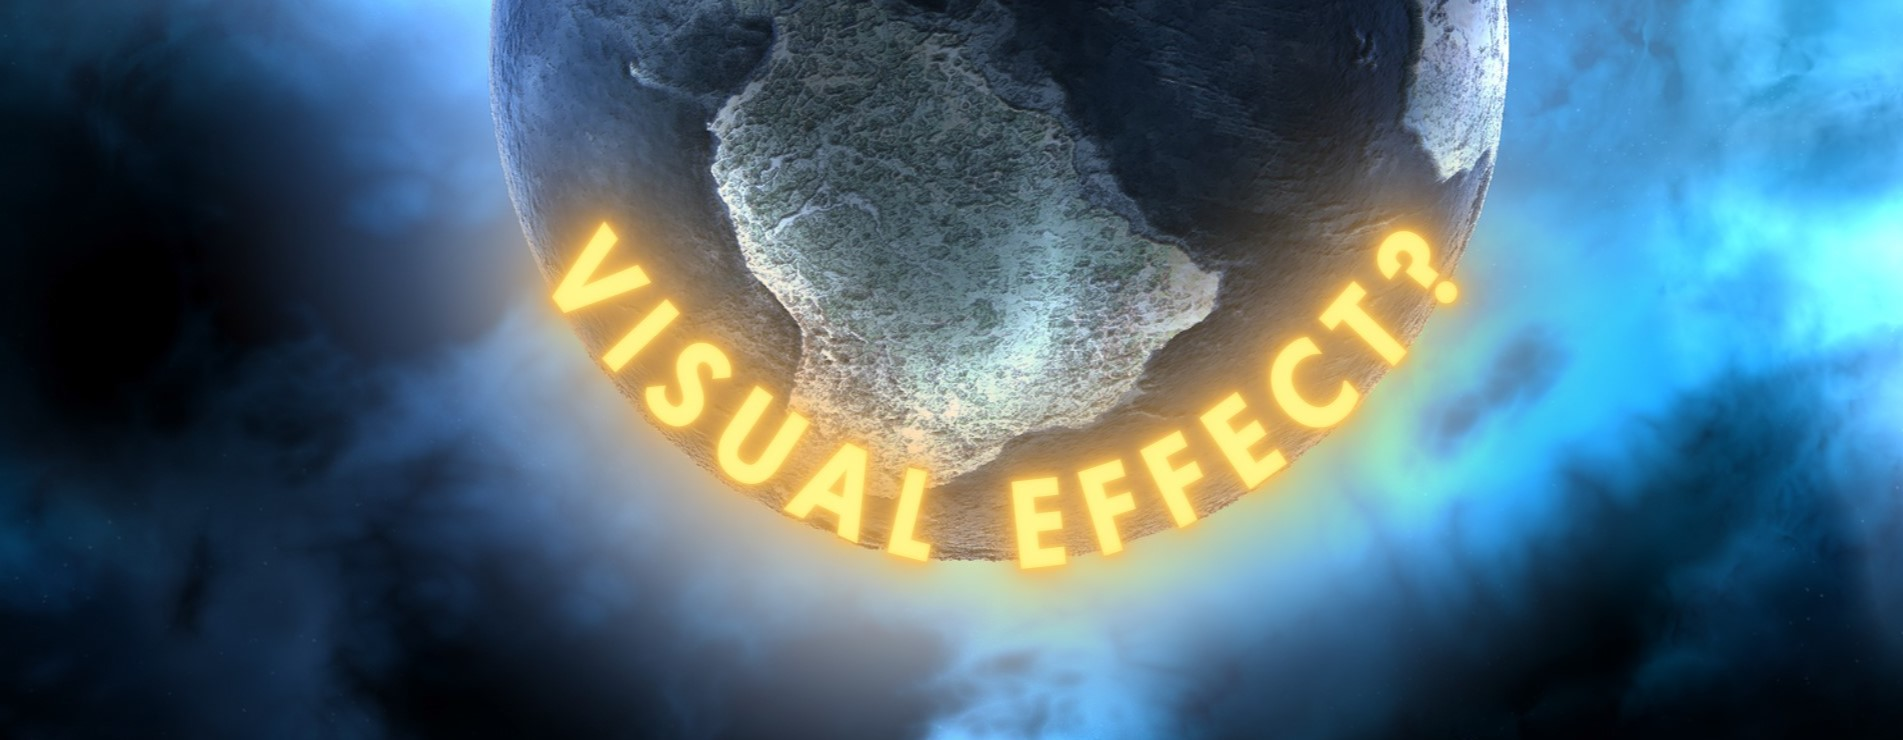 visual effect 2020_2